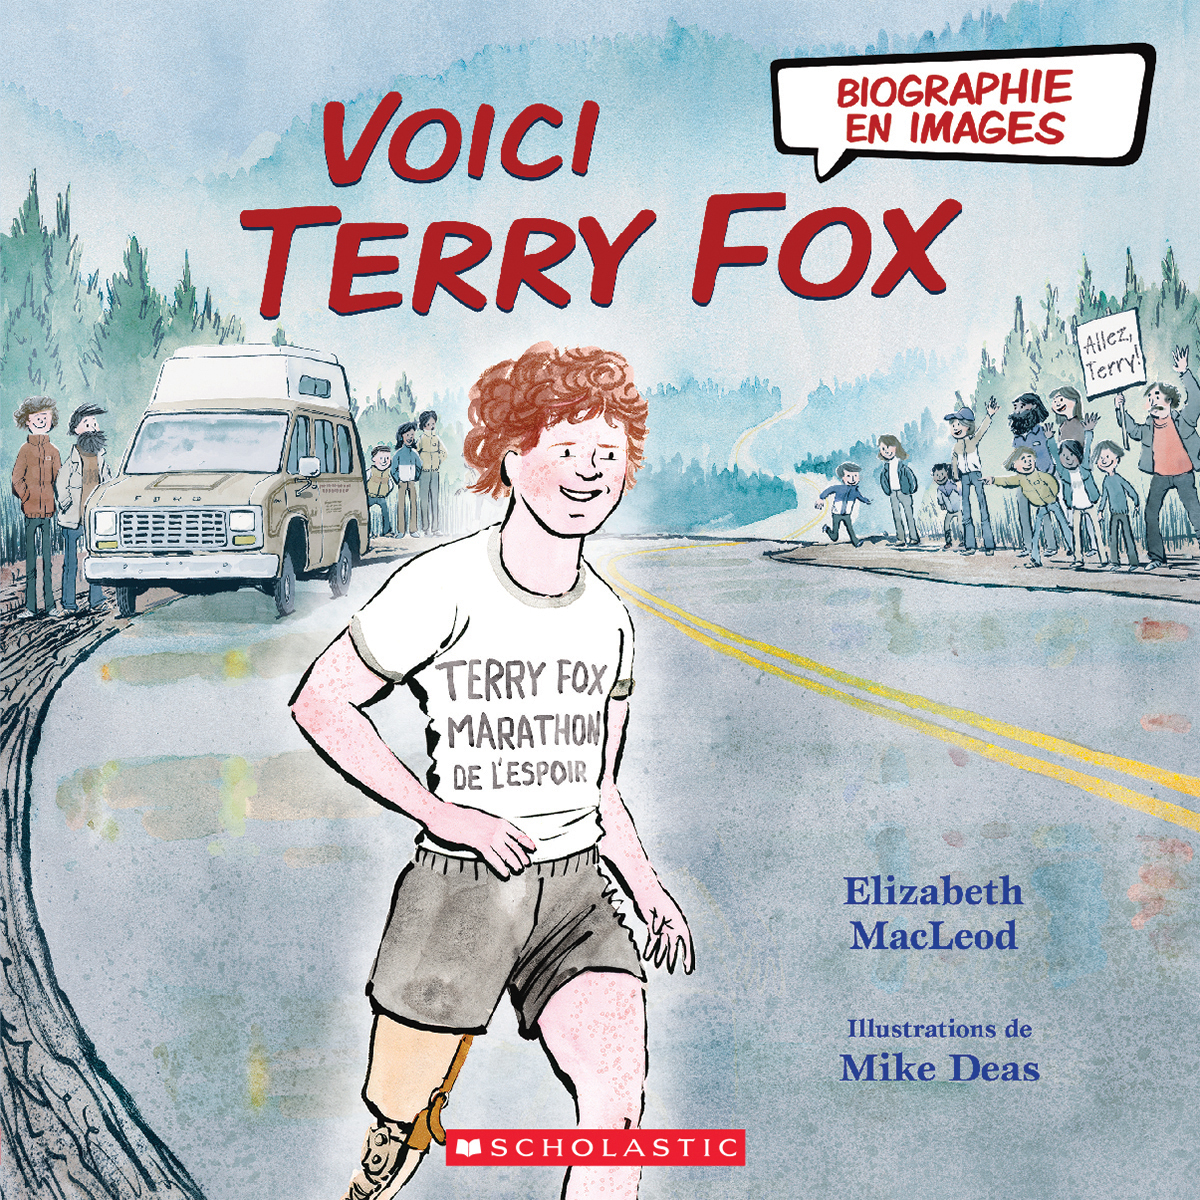 Biographie en images : Voici Terry Fox